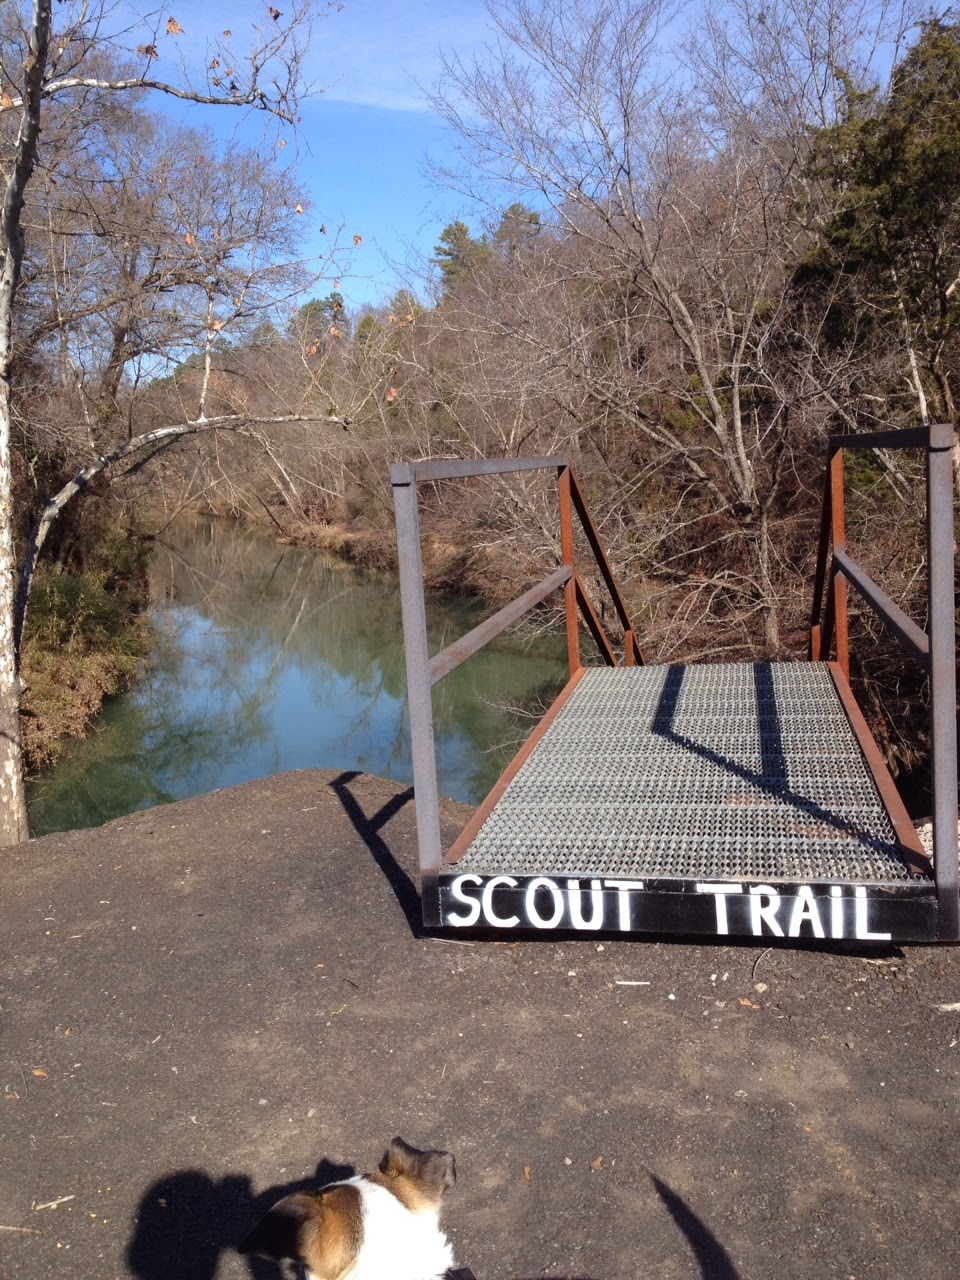 Scout Trail Spadra Creek Nature Trail, Clarksville, Arkansas by Johnnie Chamberlin